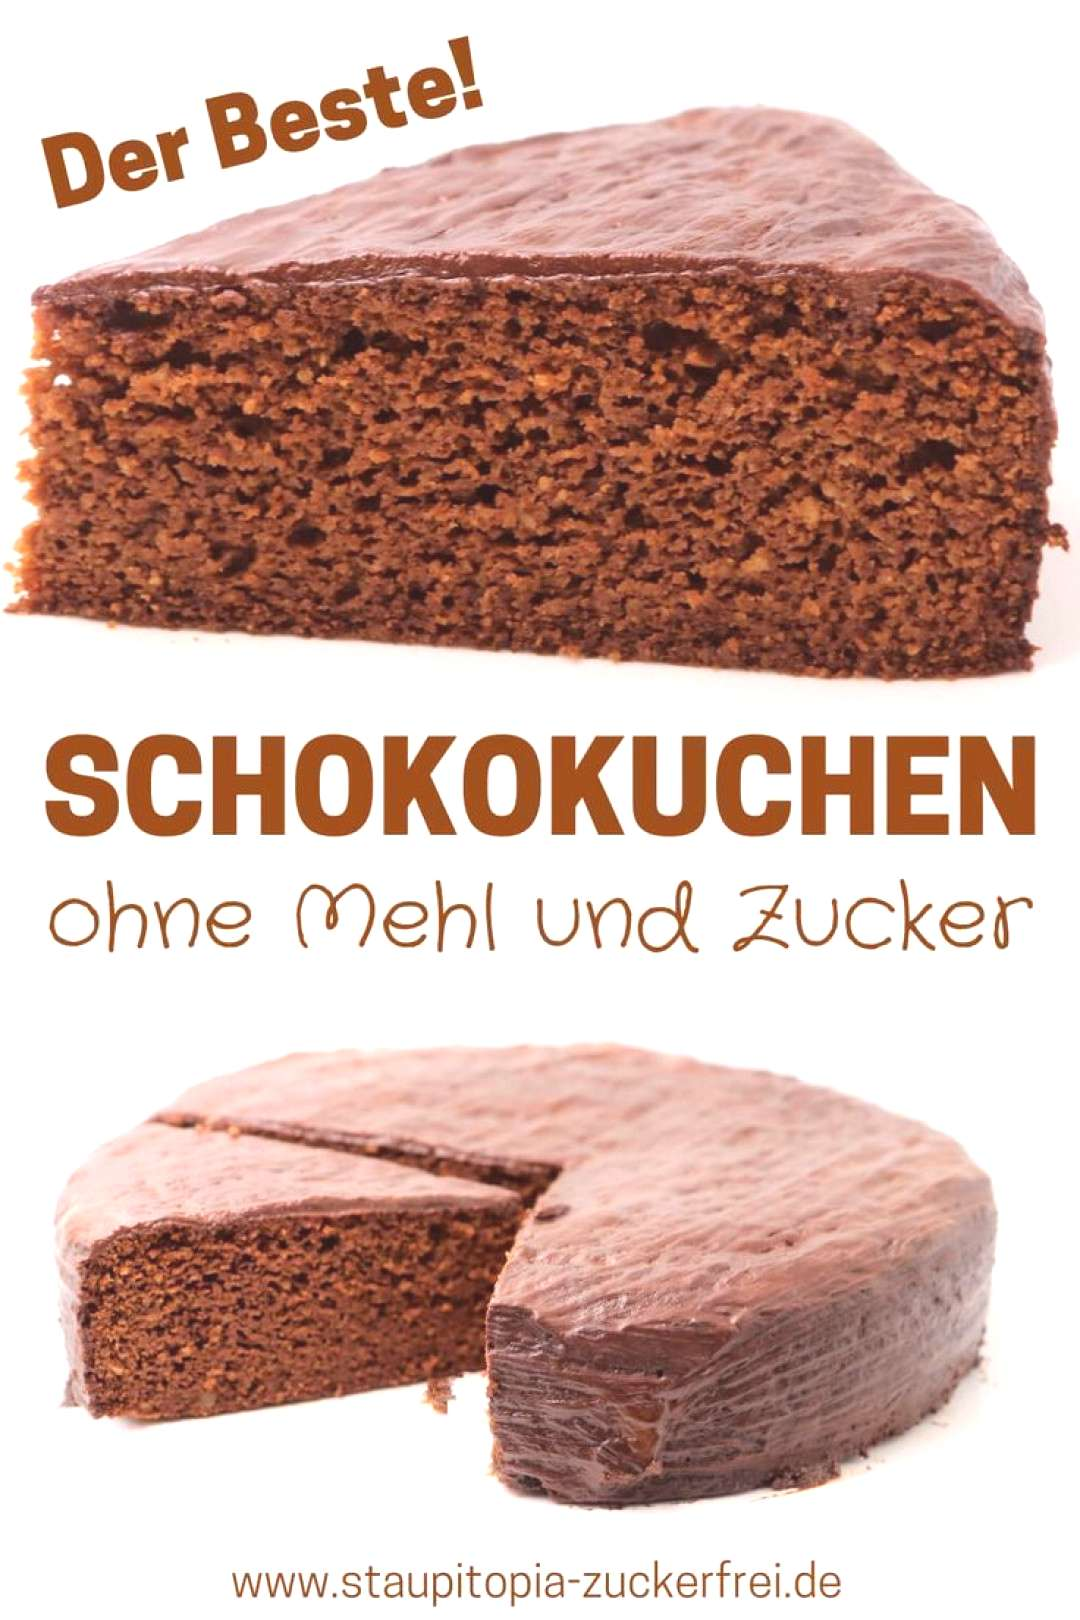 Chocolate cake without sugar and flour - Staupitopia sugar free -  Would you like to bake a chocola